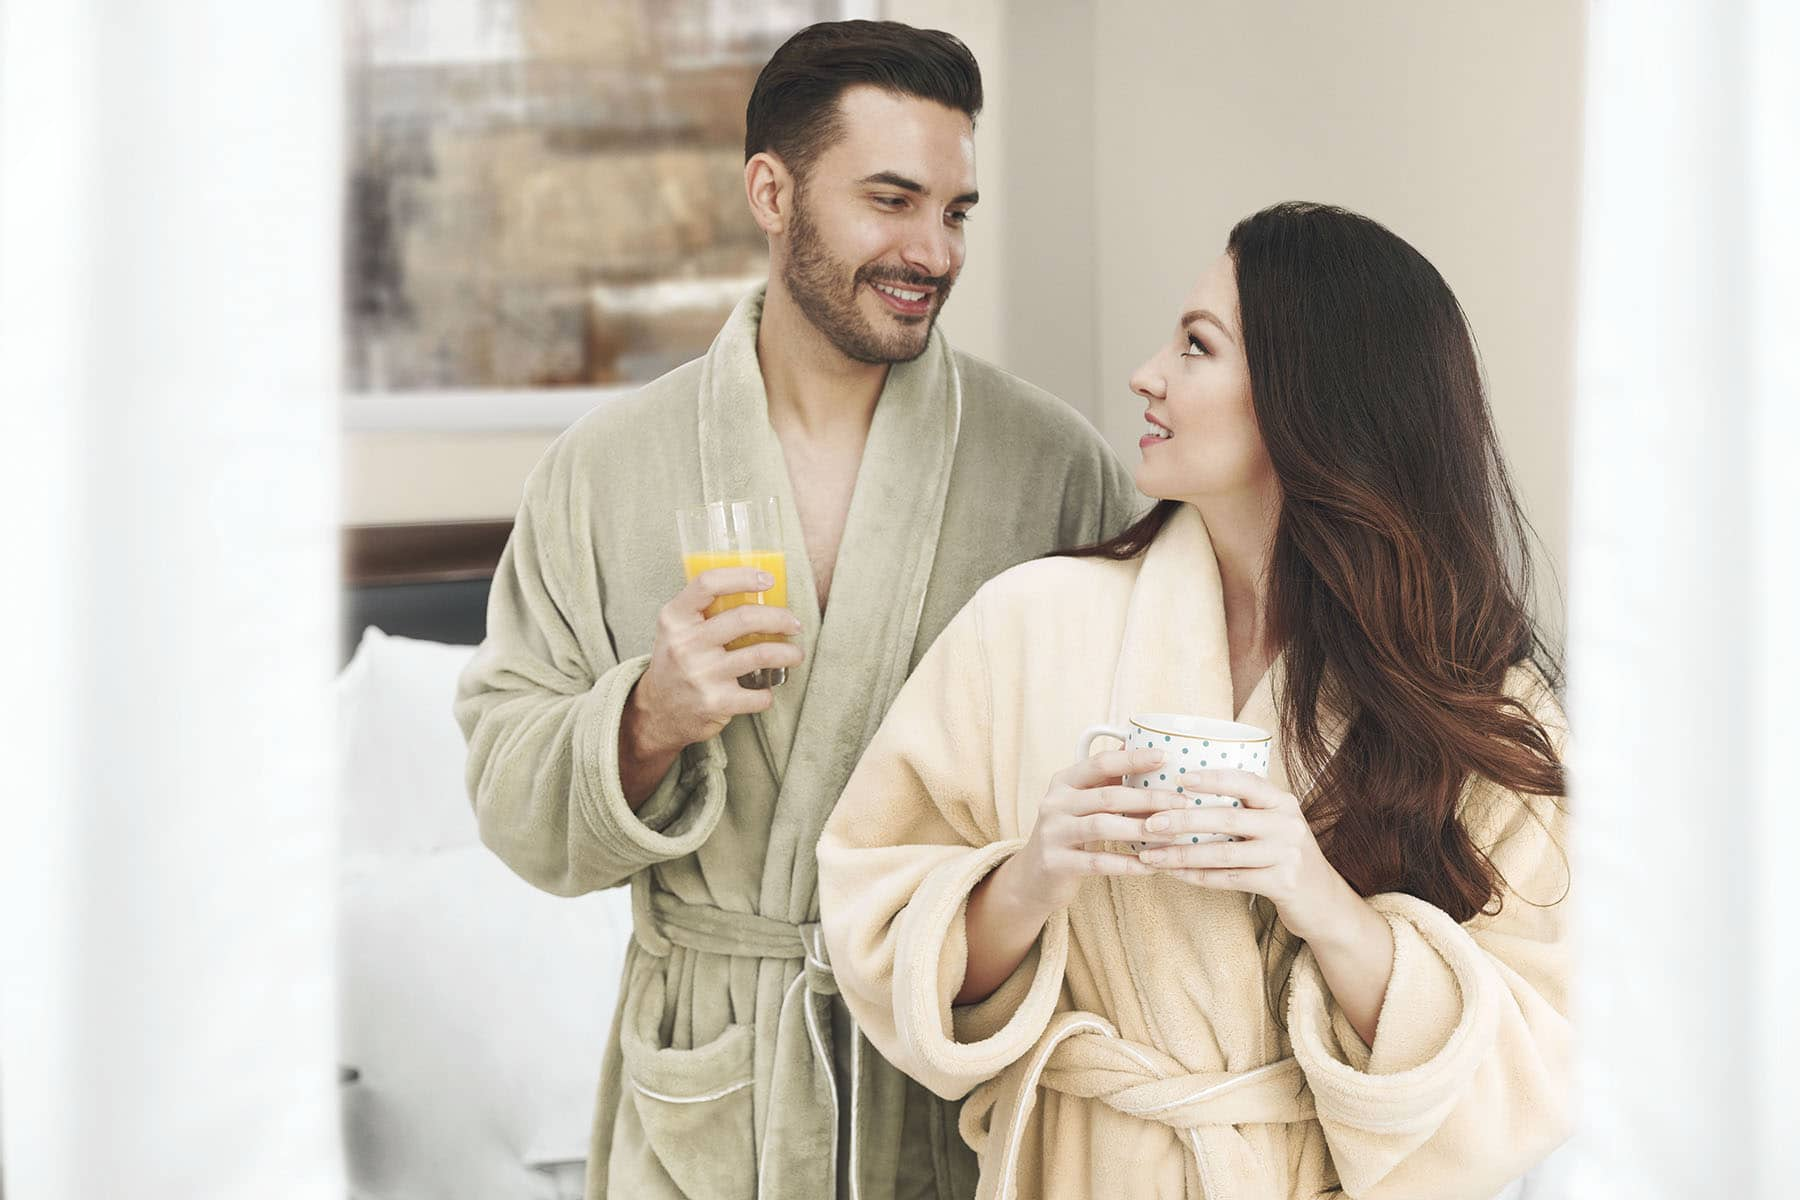 Models in urbana robes at home enjoying coffee and juice